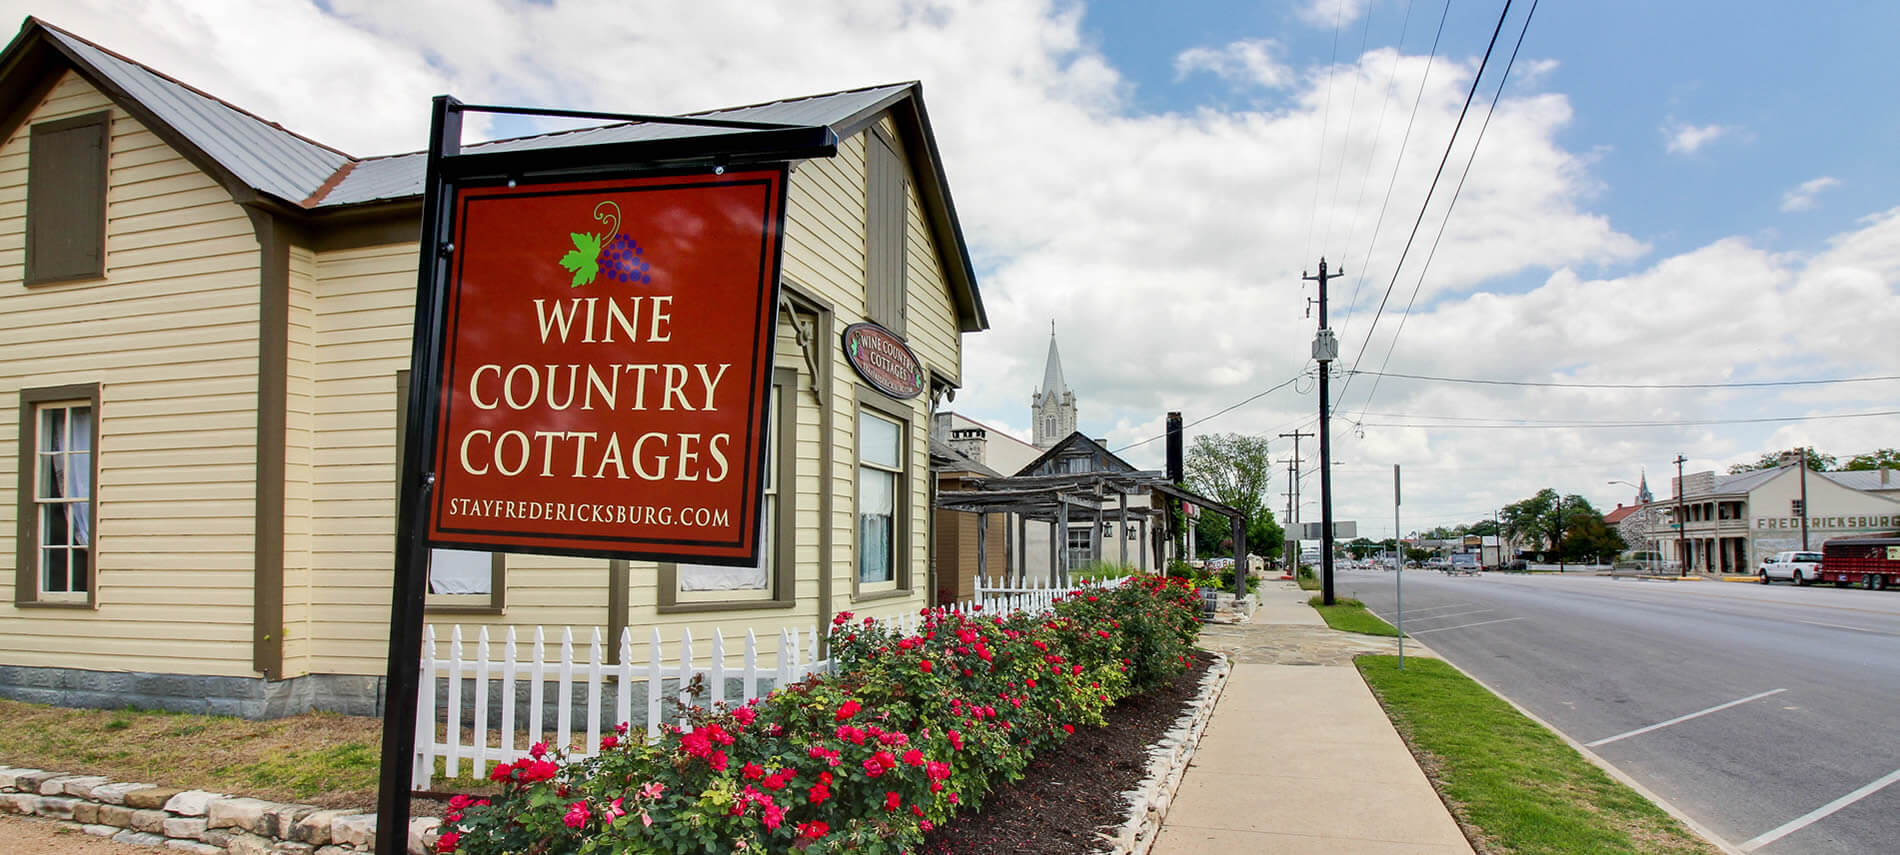 wine colored wine country cottages sight with view of cabin and main street